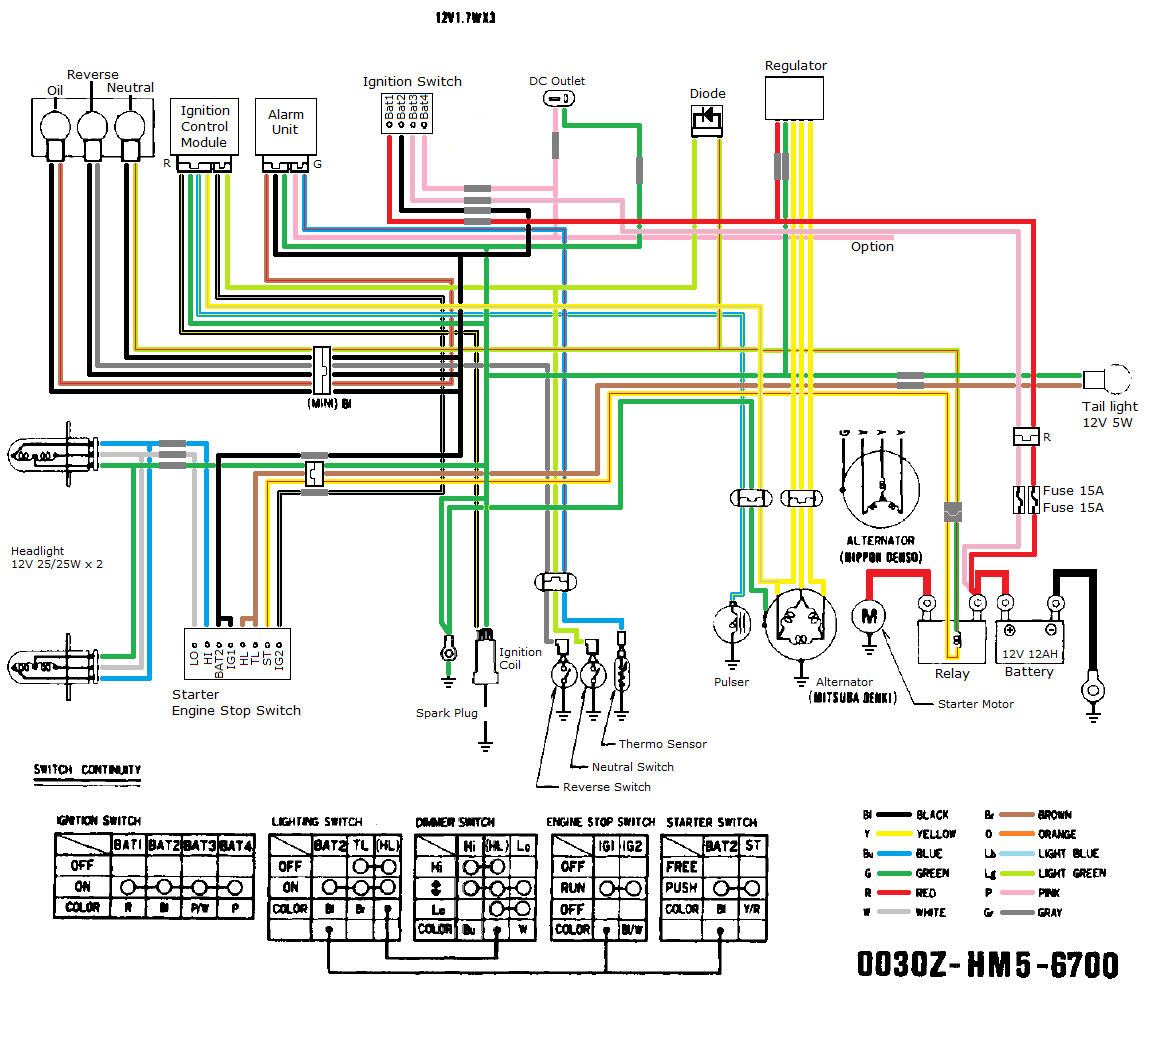 hight resolution of vxhdf yamaha 4 wheeler wiring diagram yamaha moto 4 wiring diagram at highcare asia suzuki